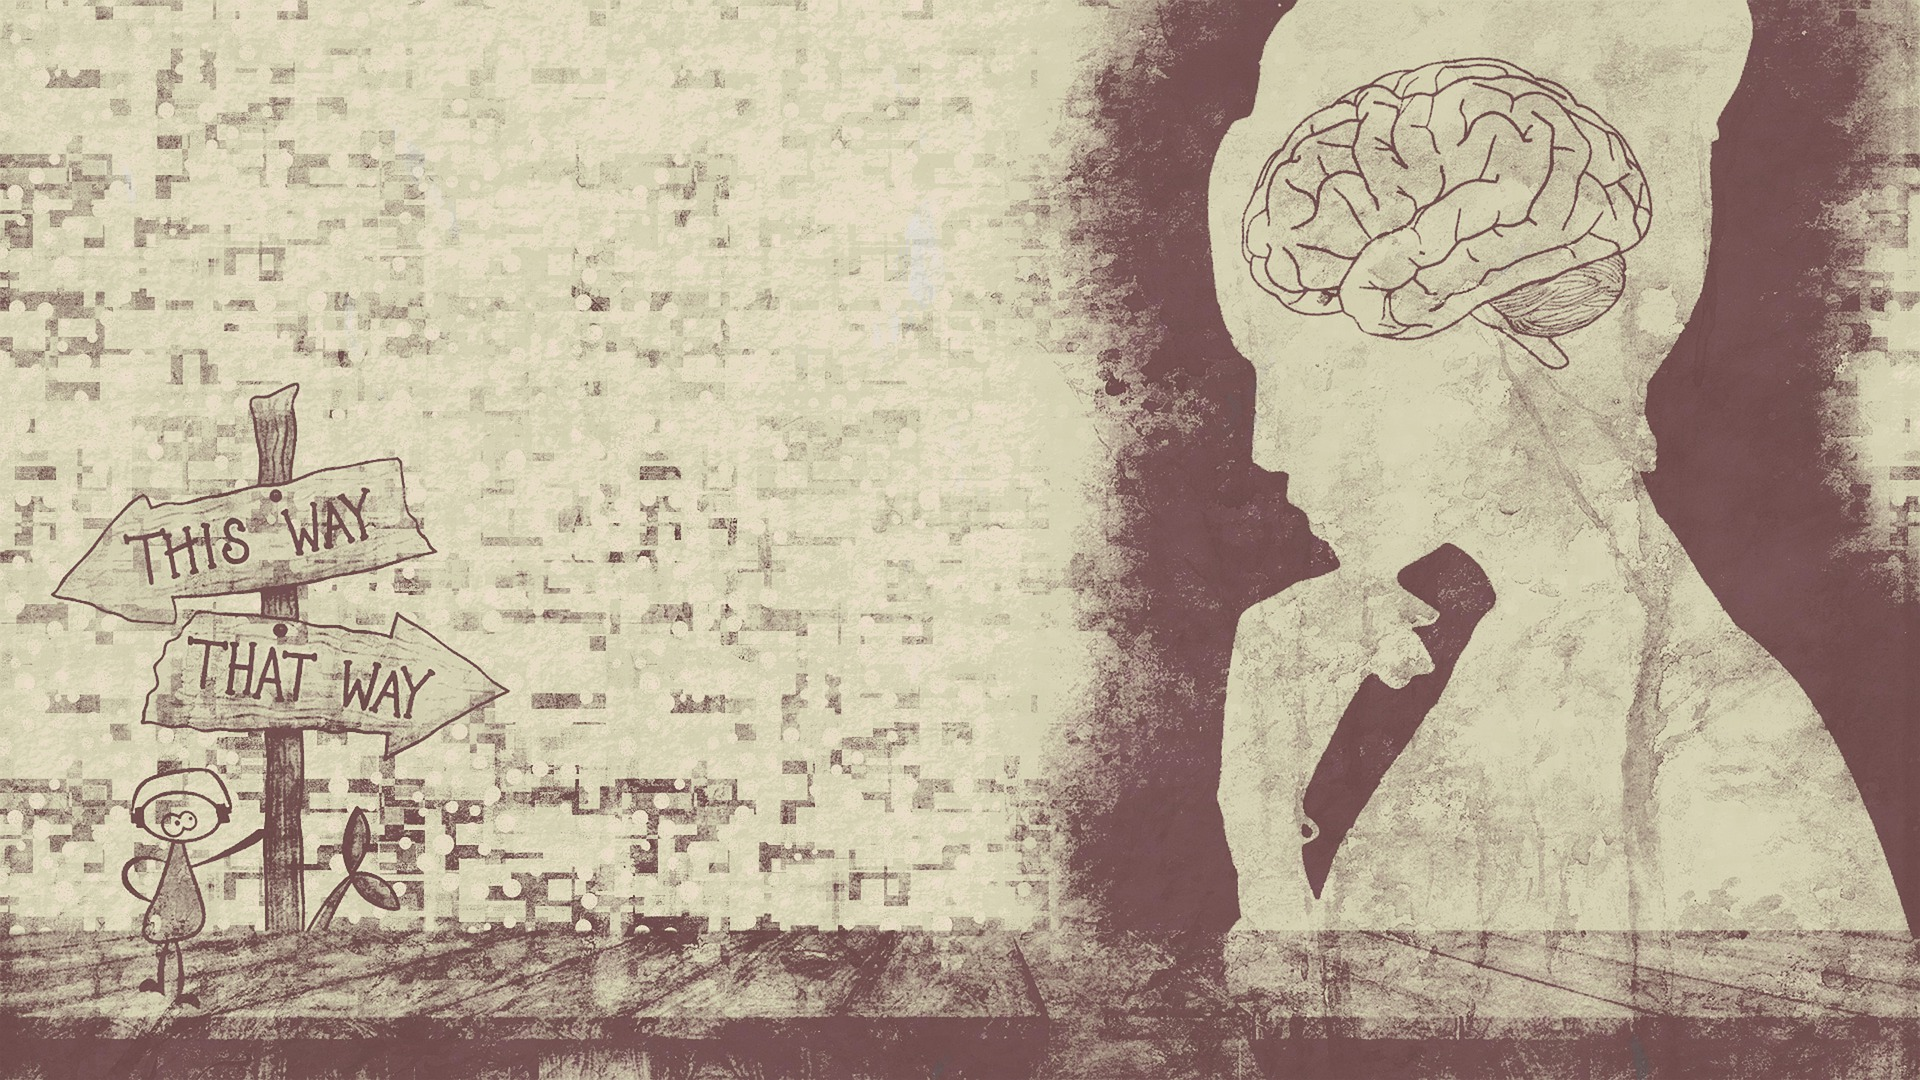 drawing of a woman with her brain visible, looking at signs saying this way or that way.